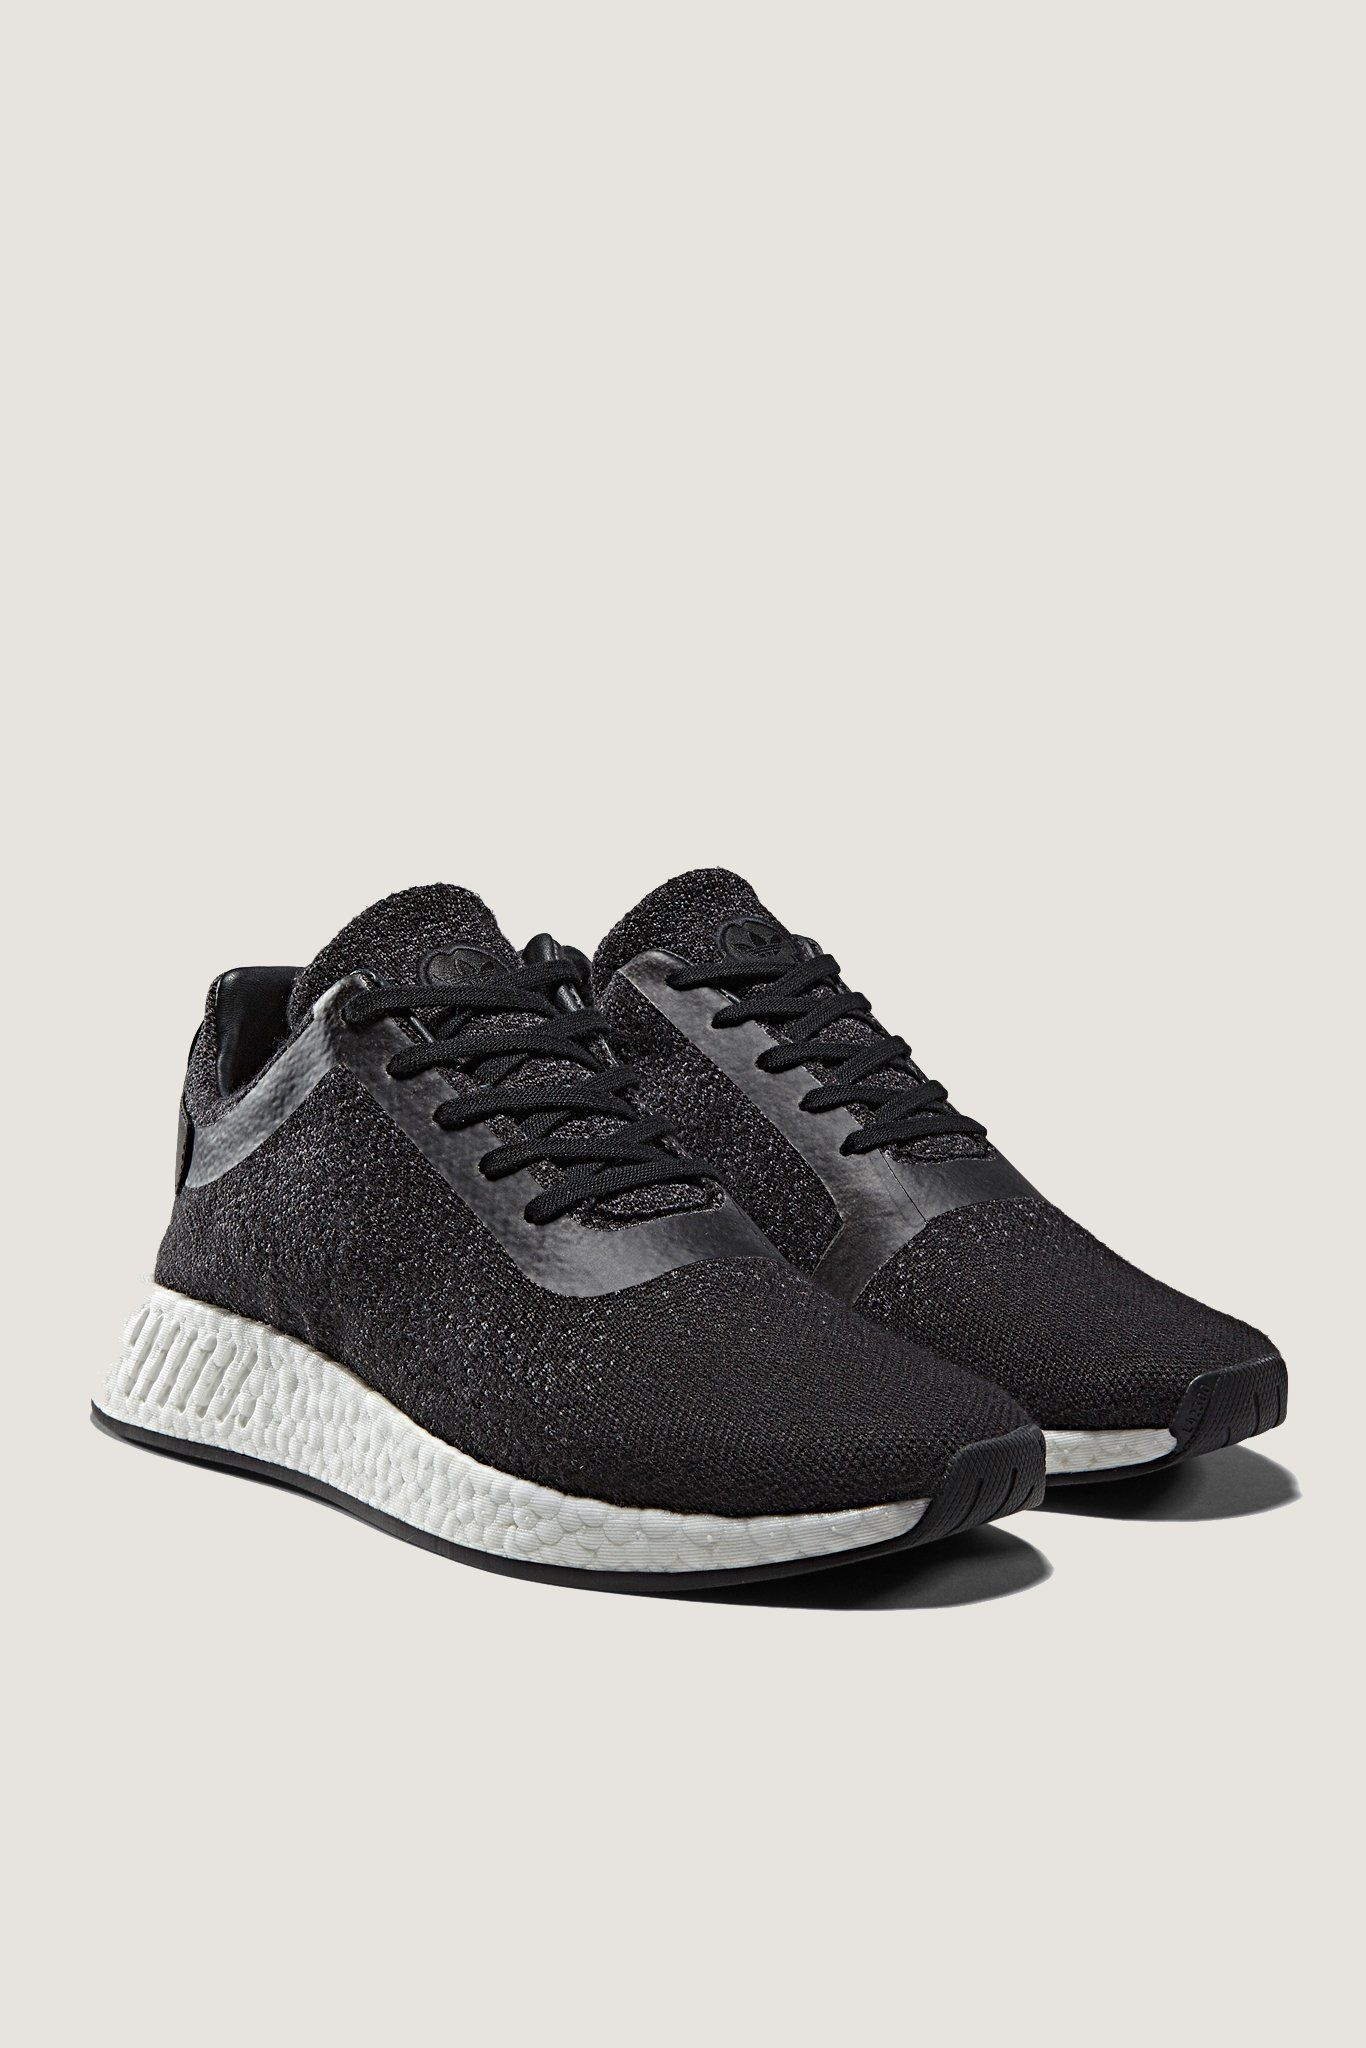 new product a7341 4fe9d Adidas X Wings + Horns Primeknit NMD R2 - Black | menswear ...